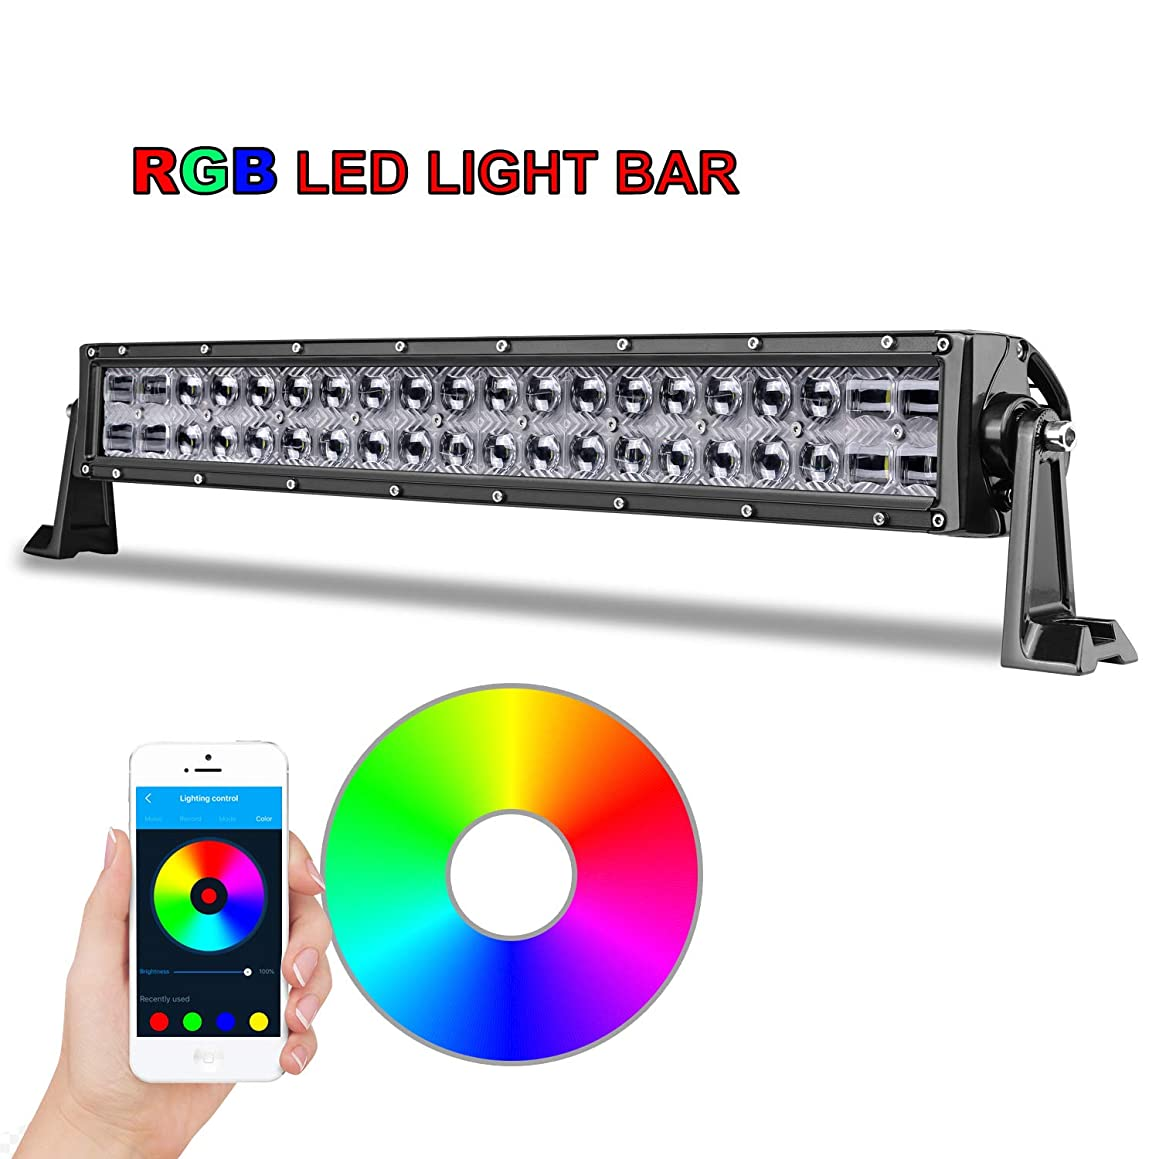 RGB LED Light Bar 20'', AKD Part Bluetooth Control CREE Offroad Light Bar with Wiring Harness 5D Color Changing Off Road Driving Lights Flood Spot Combo Work Lights For Jeep Truck ATV UTV SUV Marine